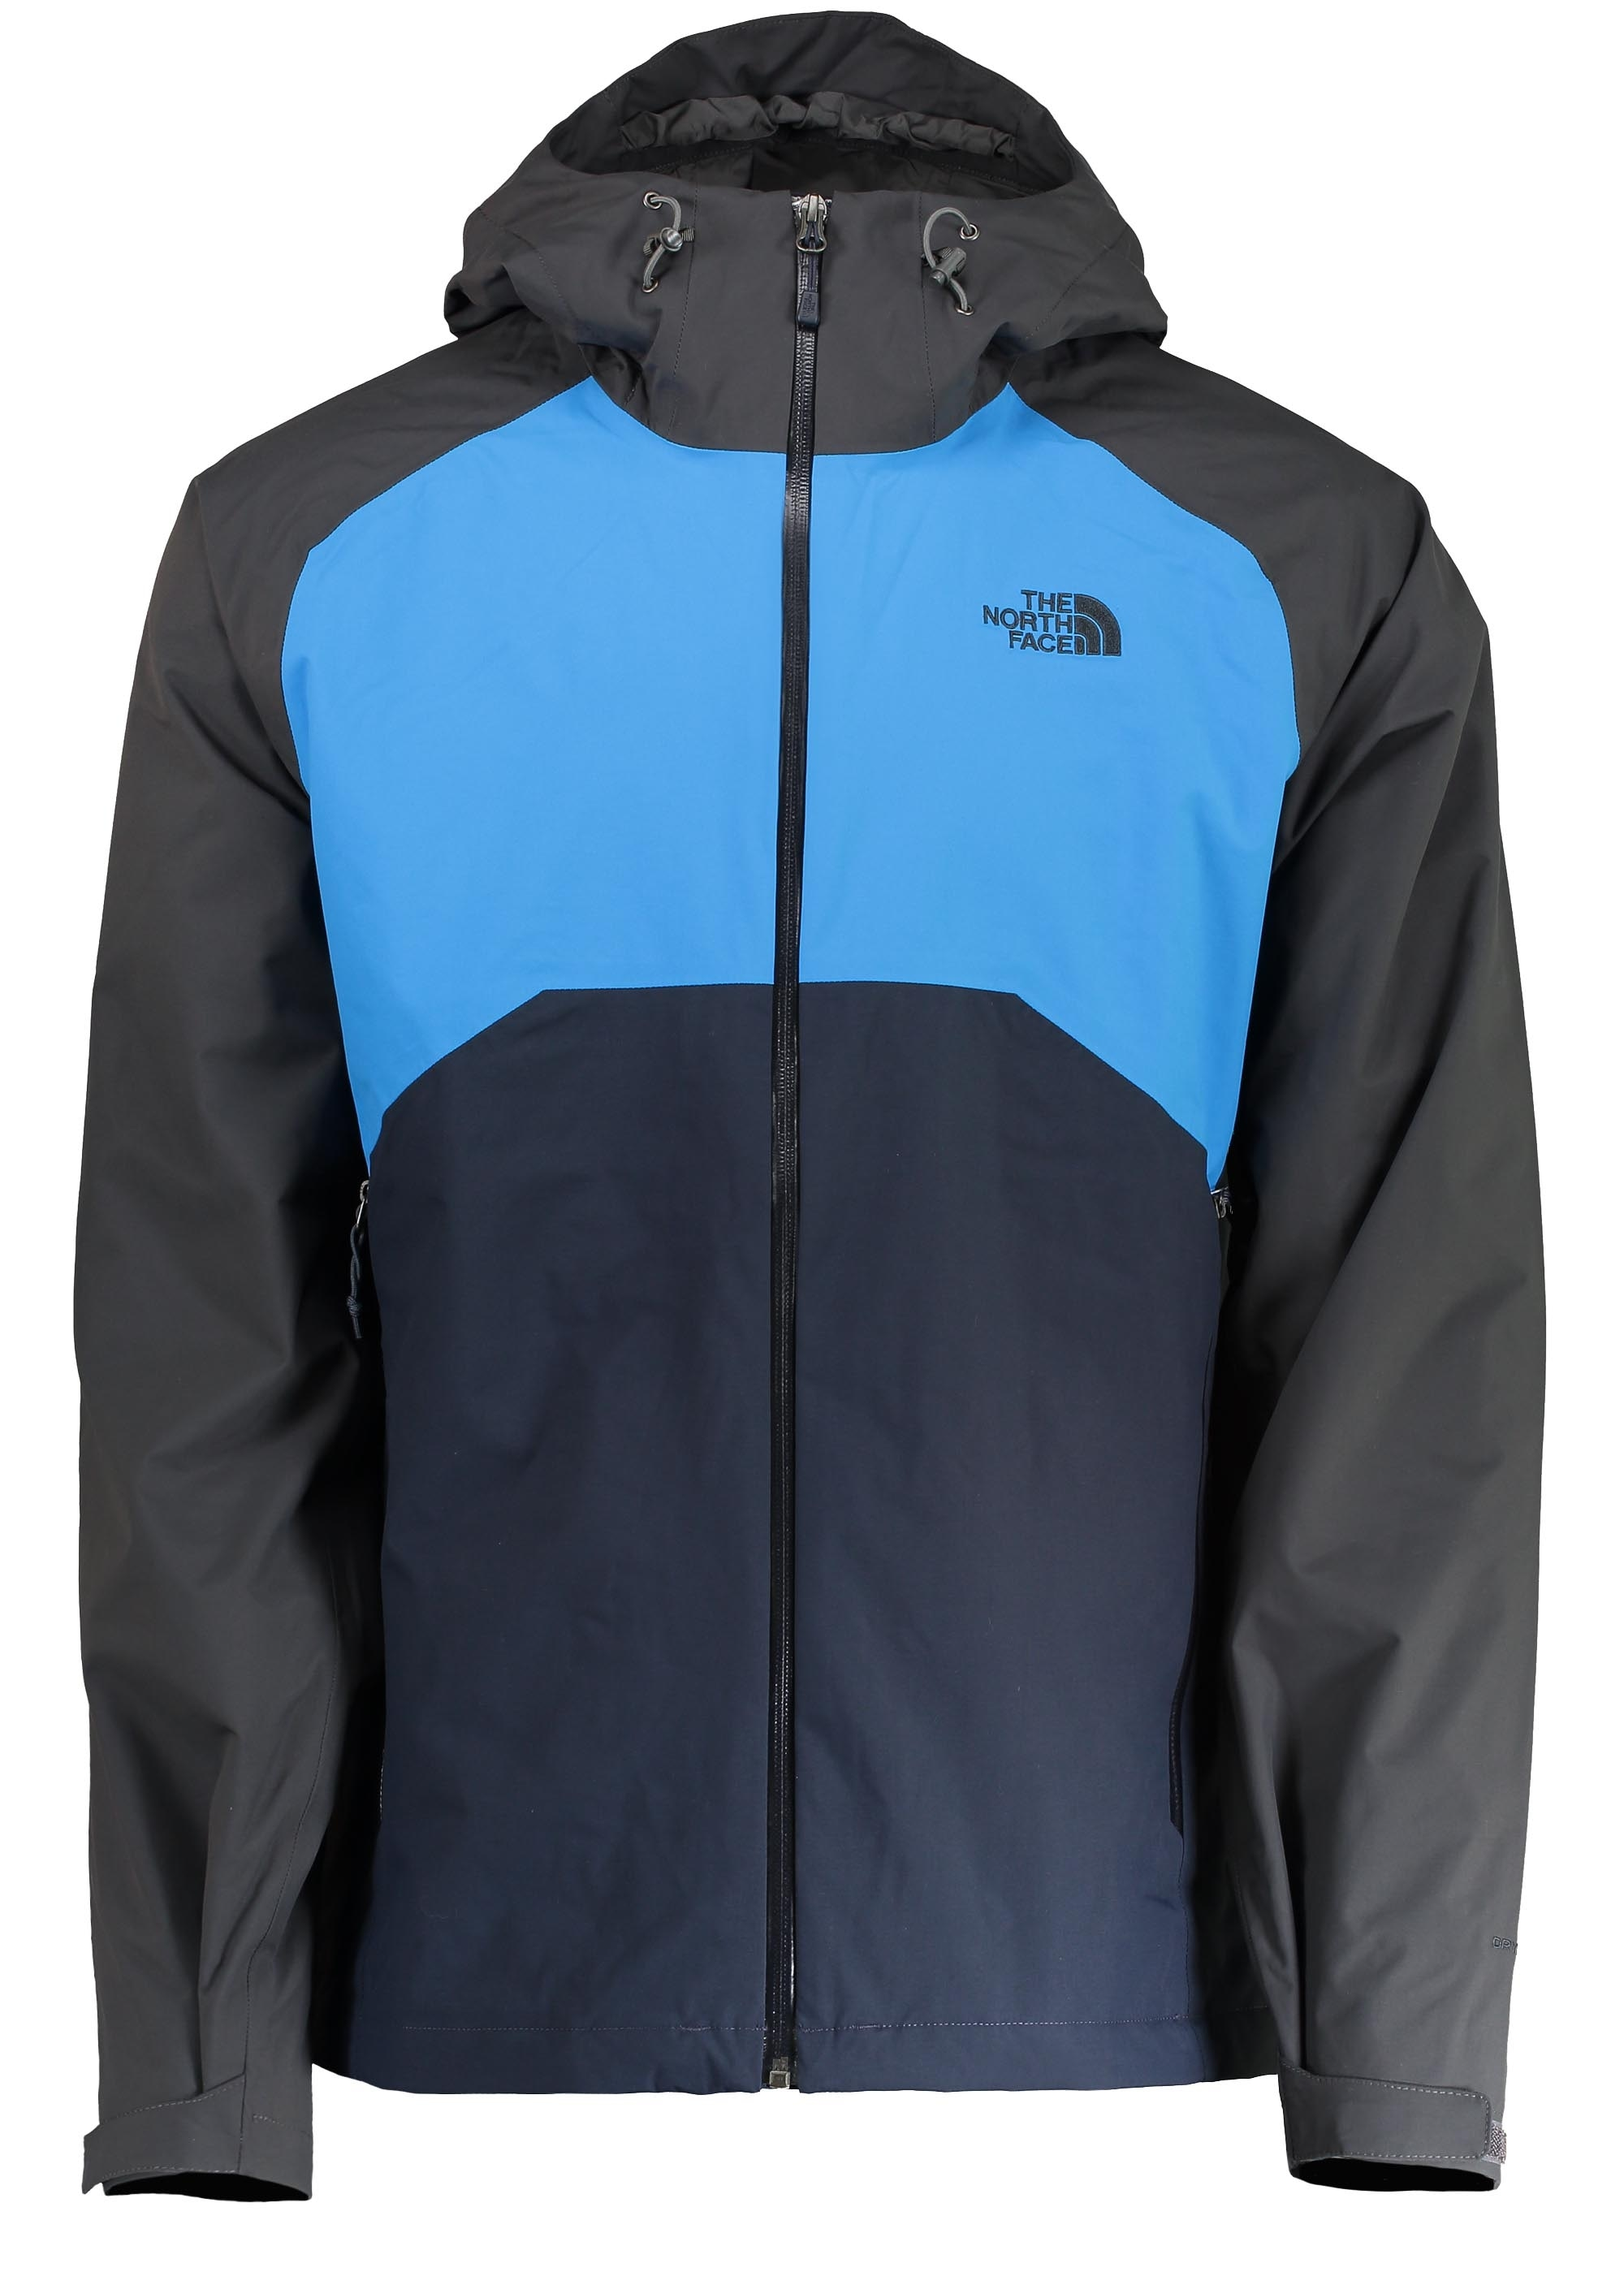 86d9d08ab The North Face Stratos Jacket - Urban Navy / Blue